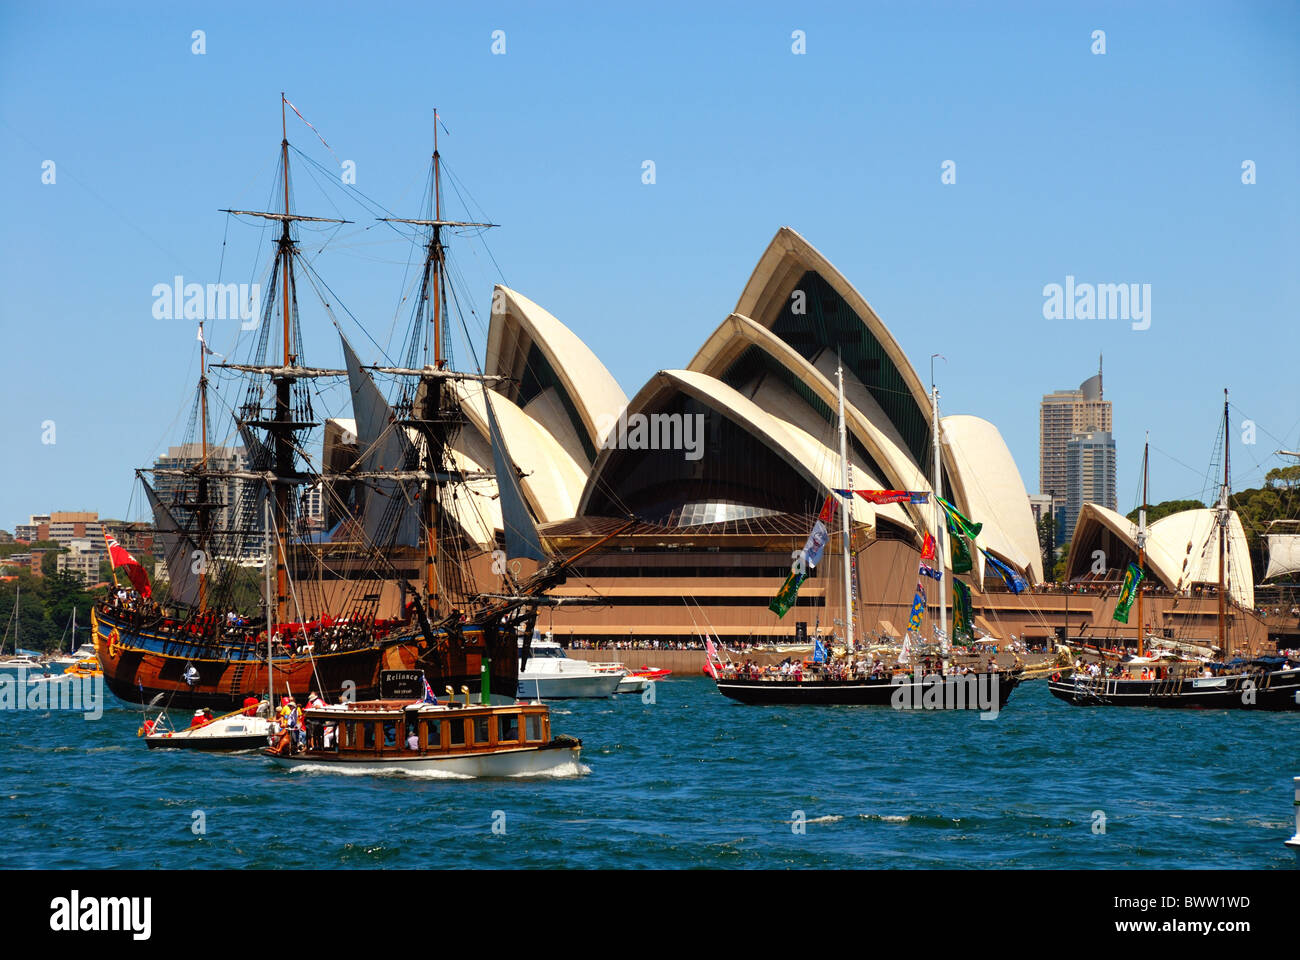 Australia Sydney Australia Day Ferrython Great Ferry Race National day Ferries Boat Boats Vessels Vessel Sh - Stock Image